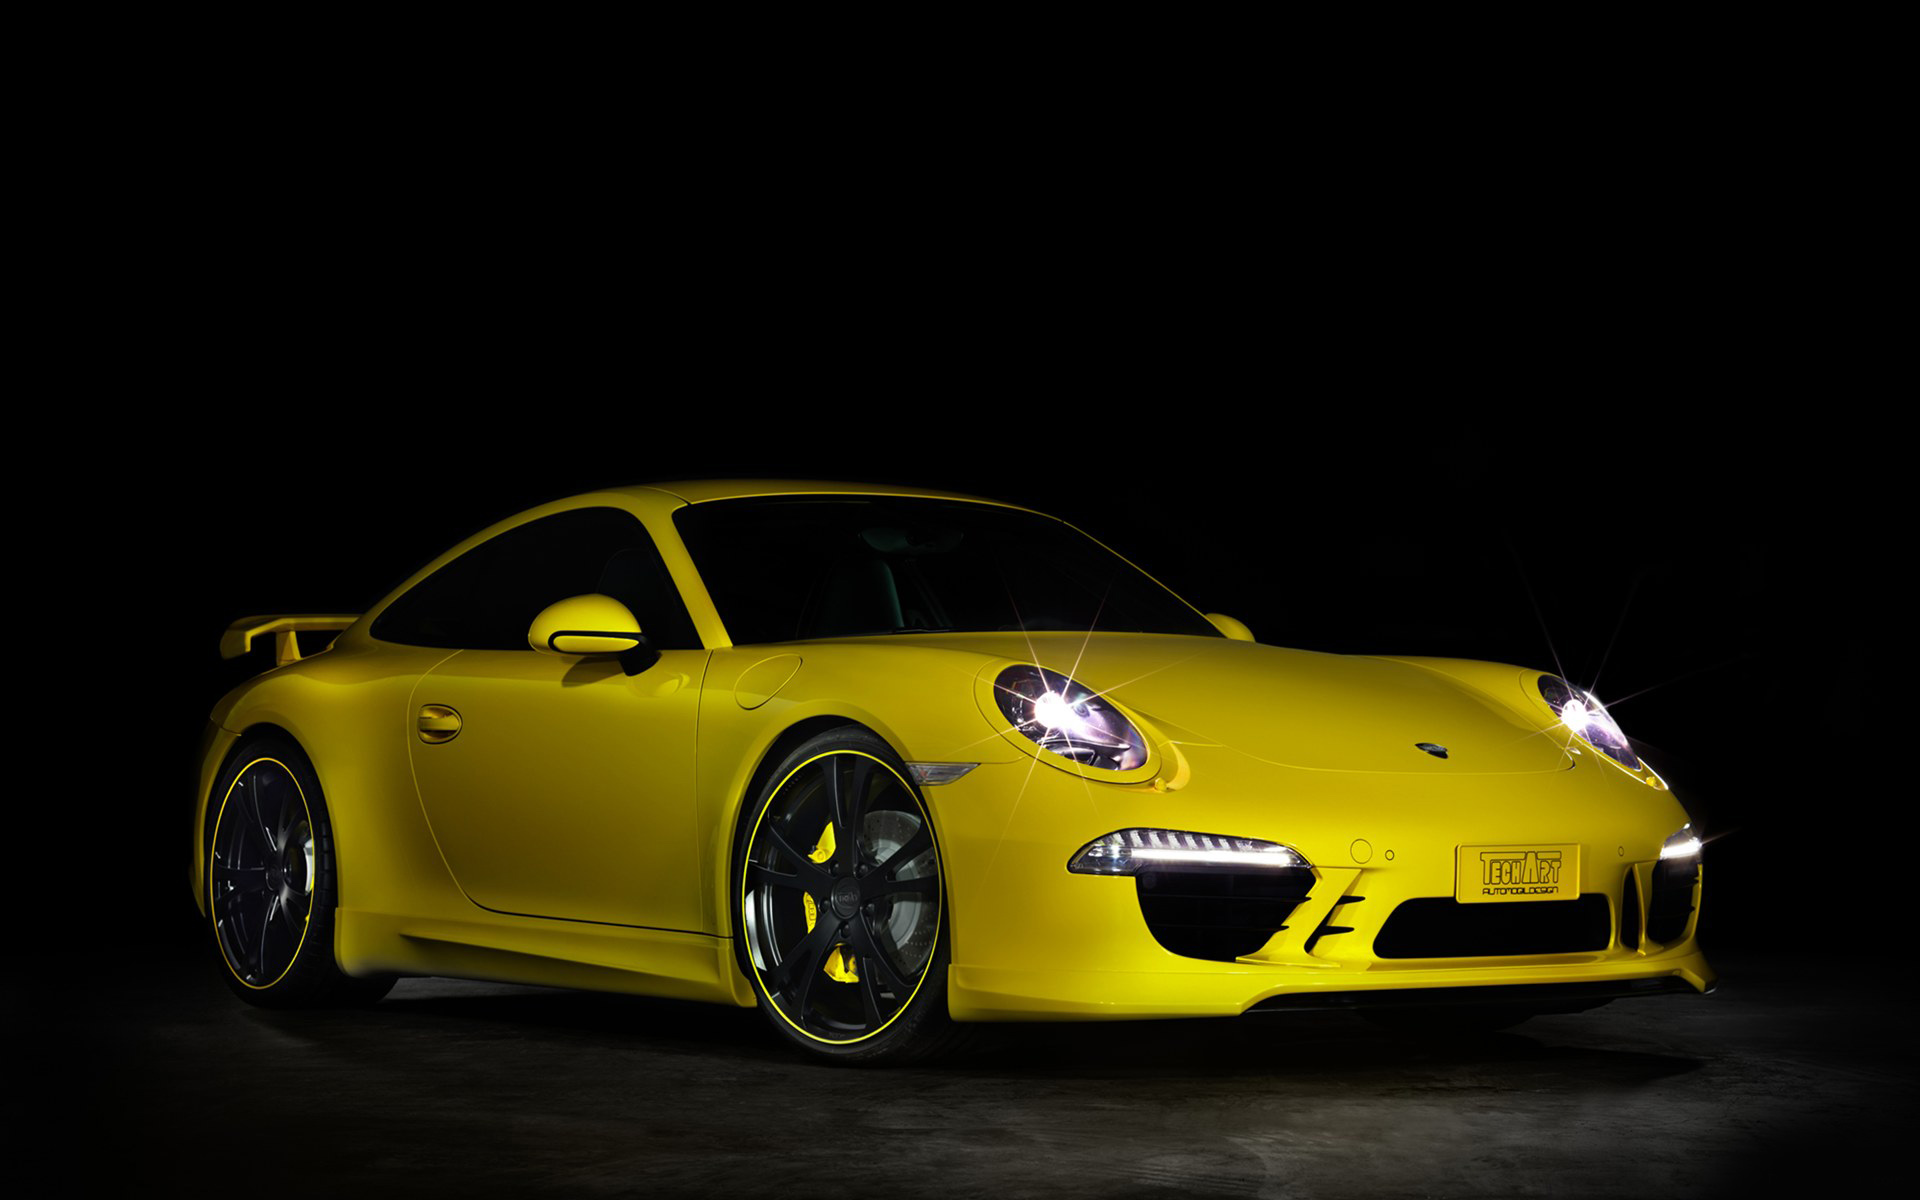 2012 TECHART Porsche 911 Wallpaper HD Car Wallpapers 1920x1200